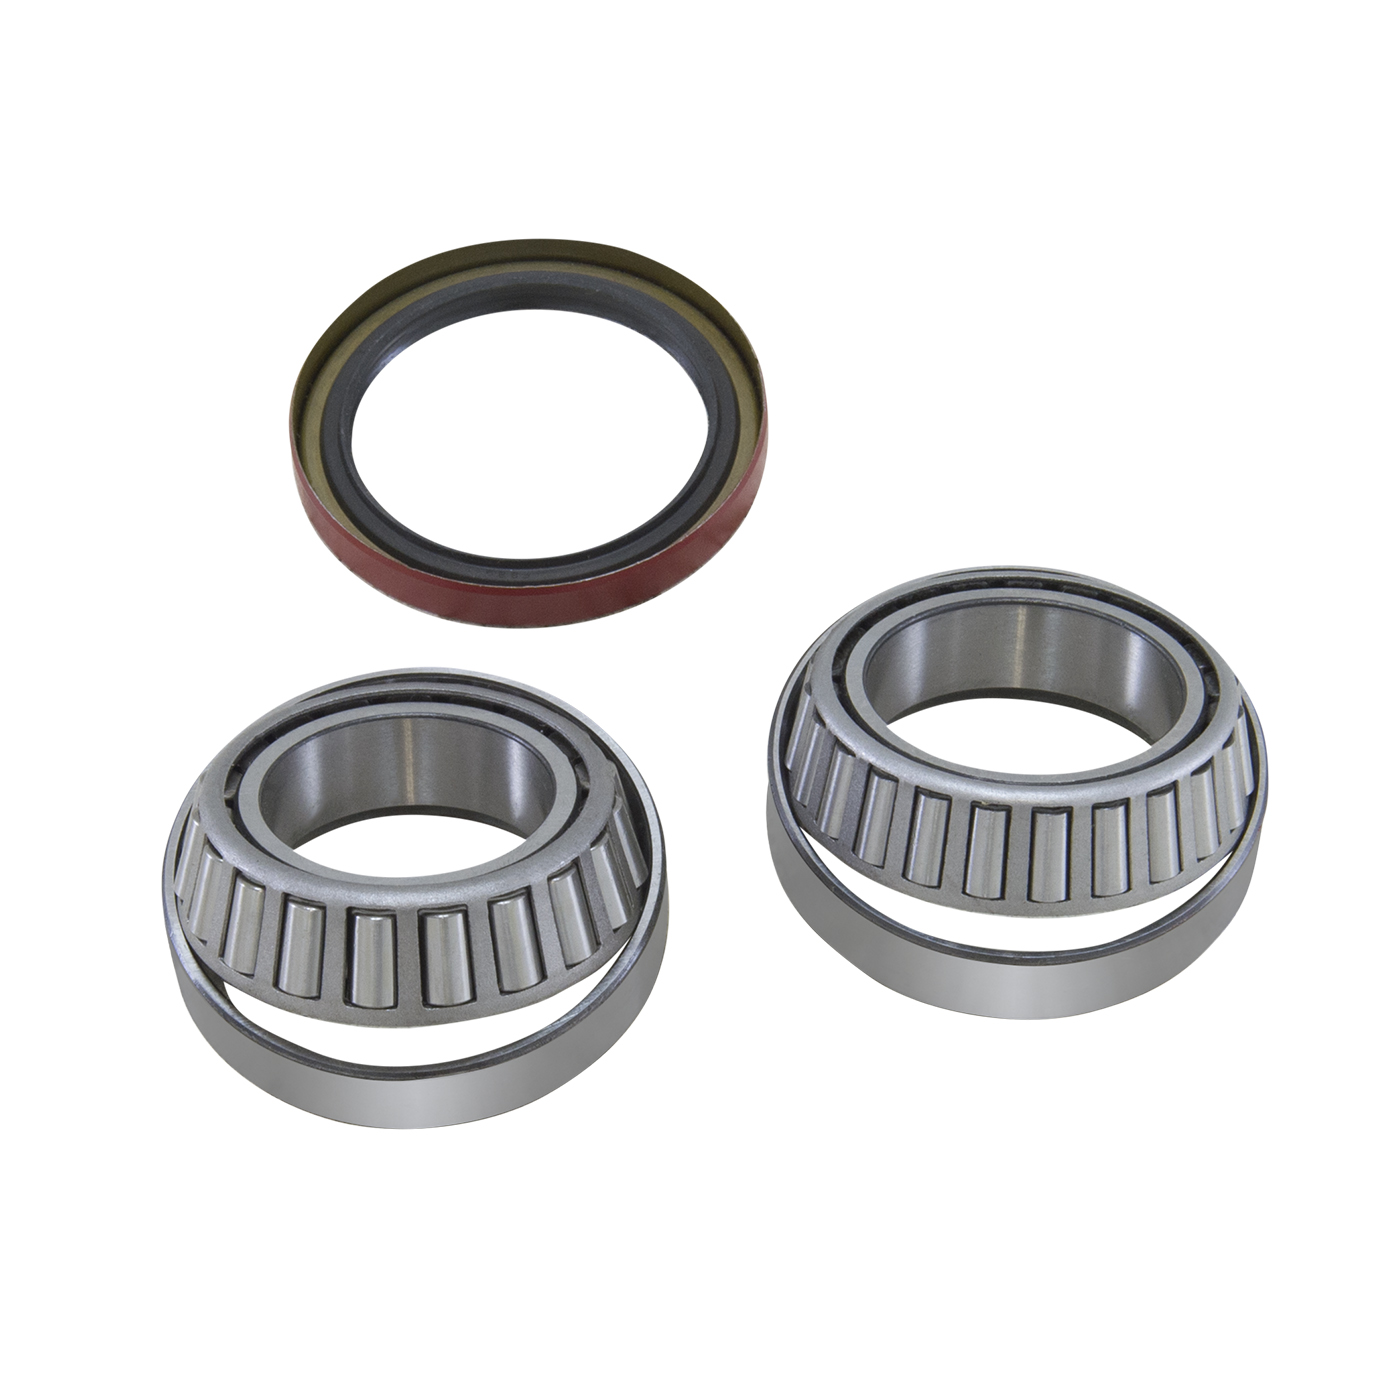 AK F-J01 - Yukon Axle Bearing and Seal Kit for Dana 30 Front